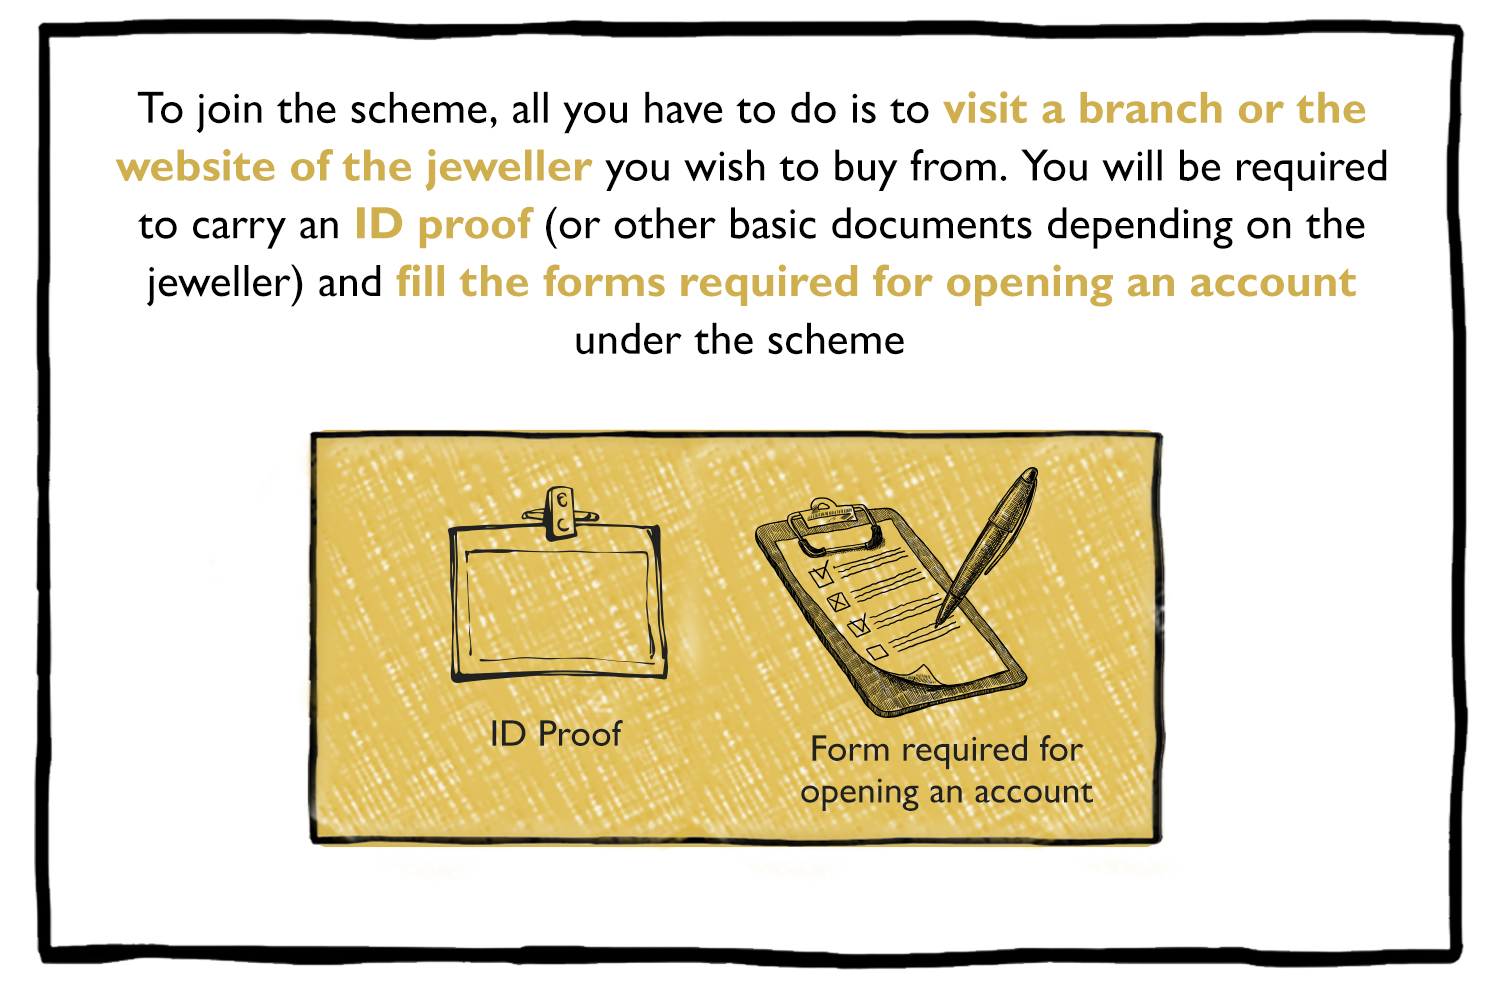 Gold Schemes by jewelers required details